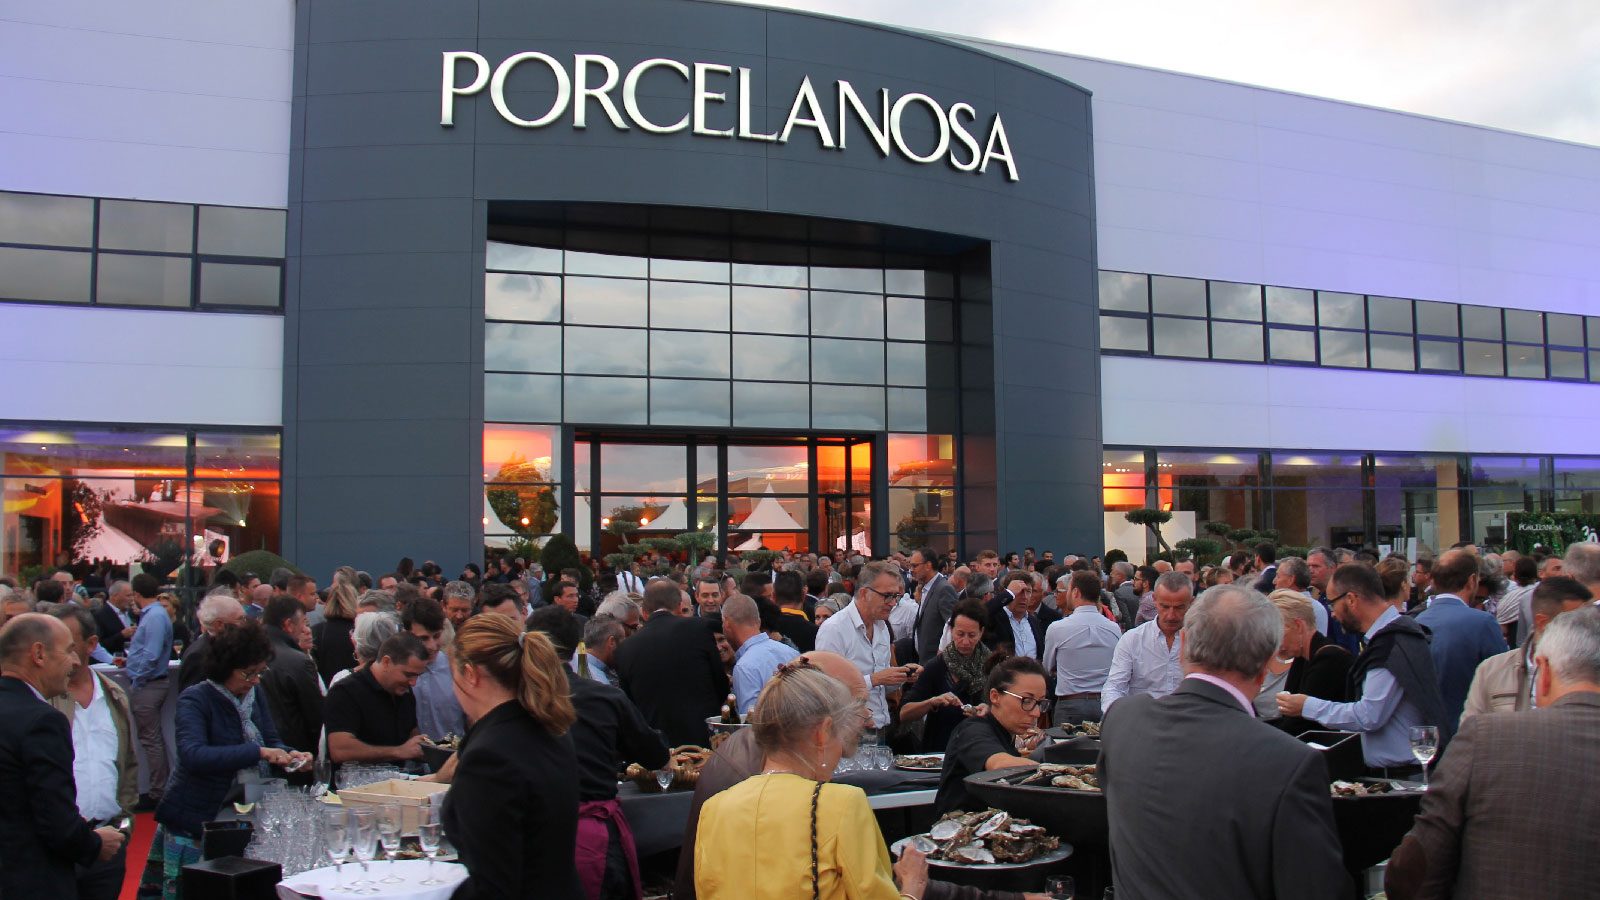 The PORCELANOSA Group celebrates its 30th anniversary in Strasbourg and in Nantes, France